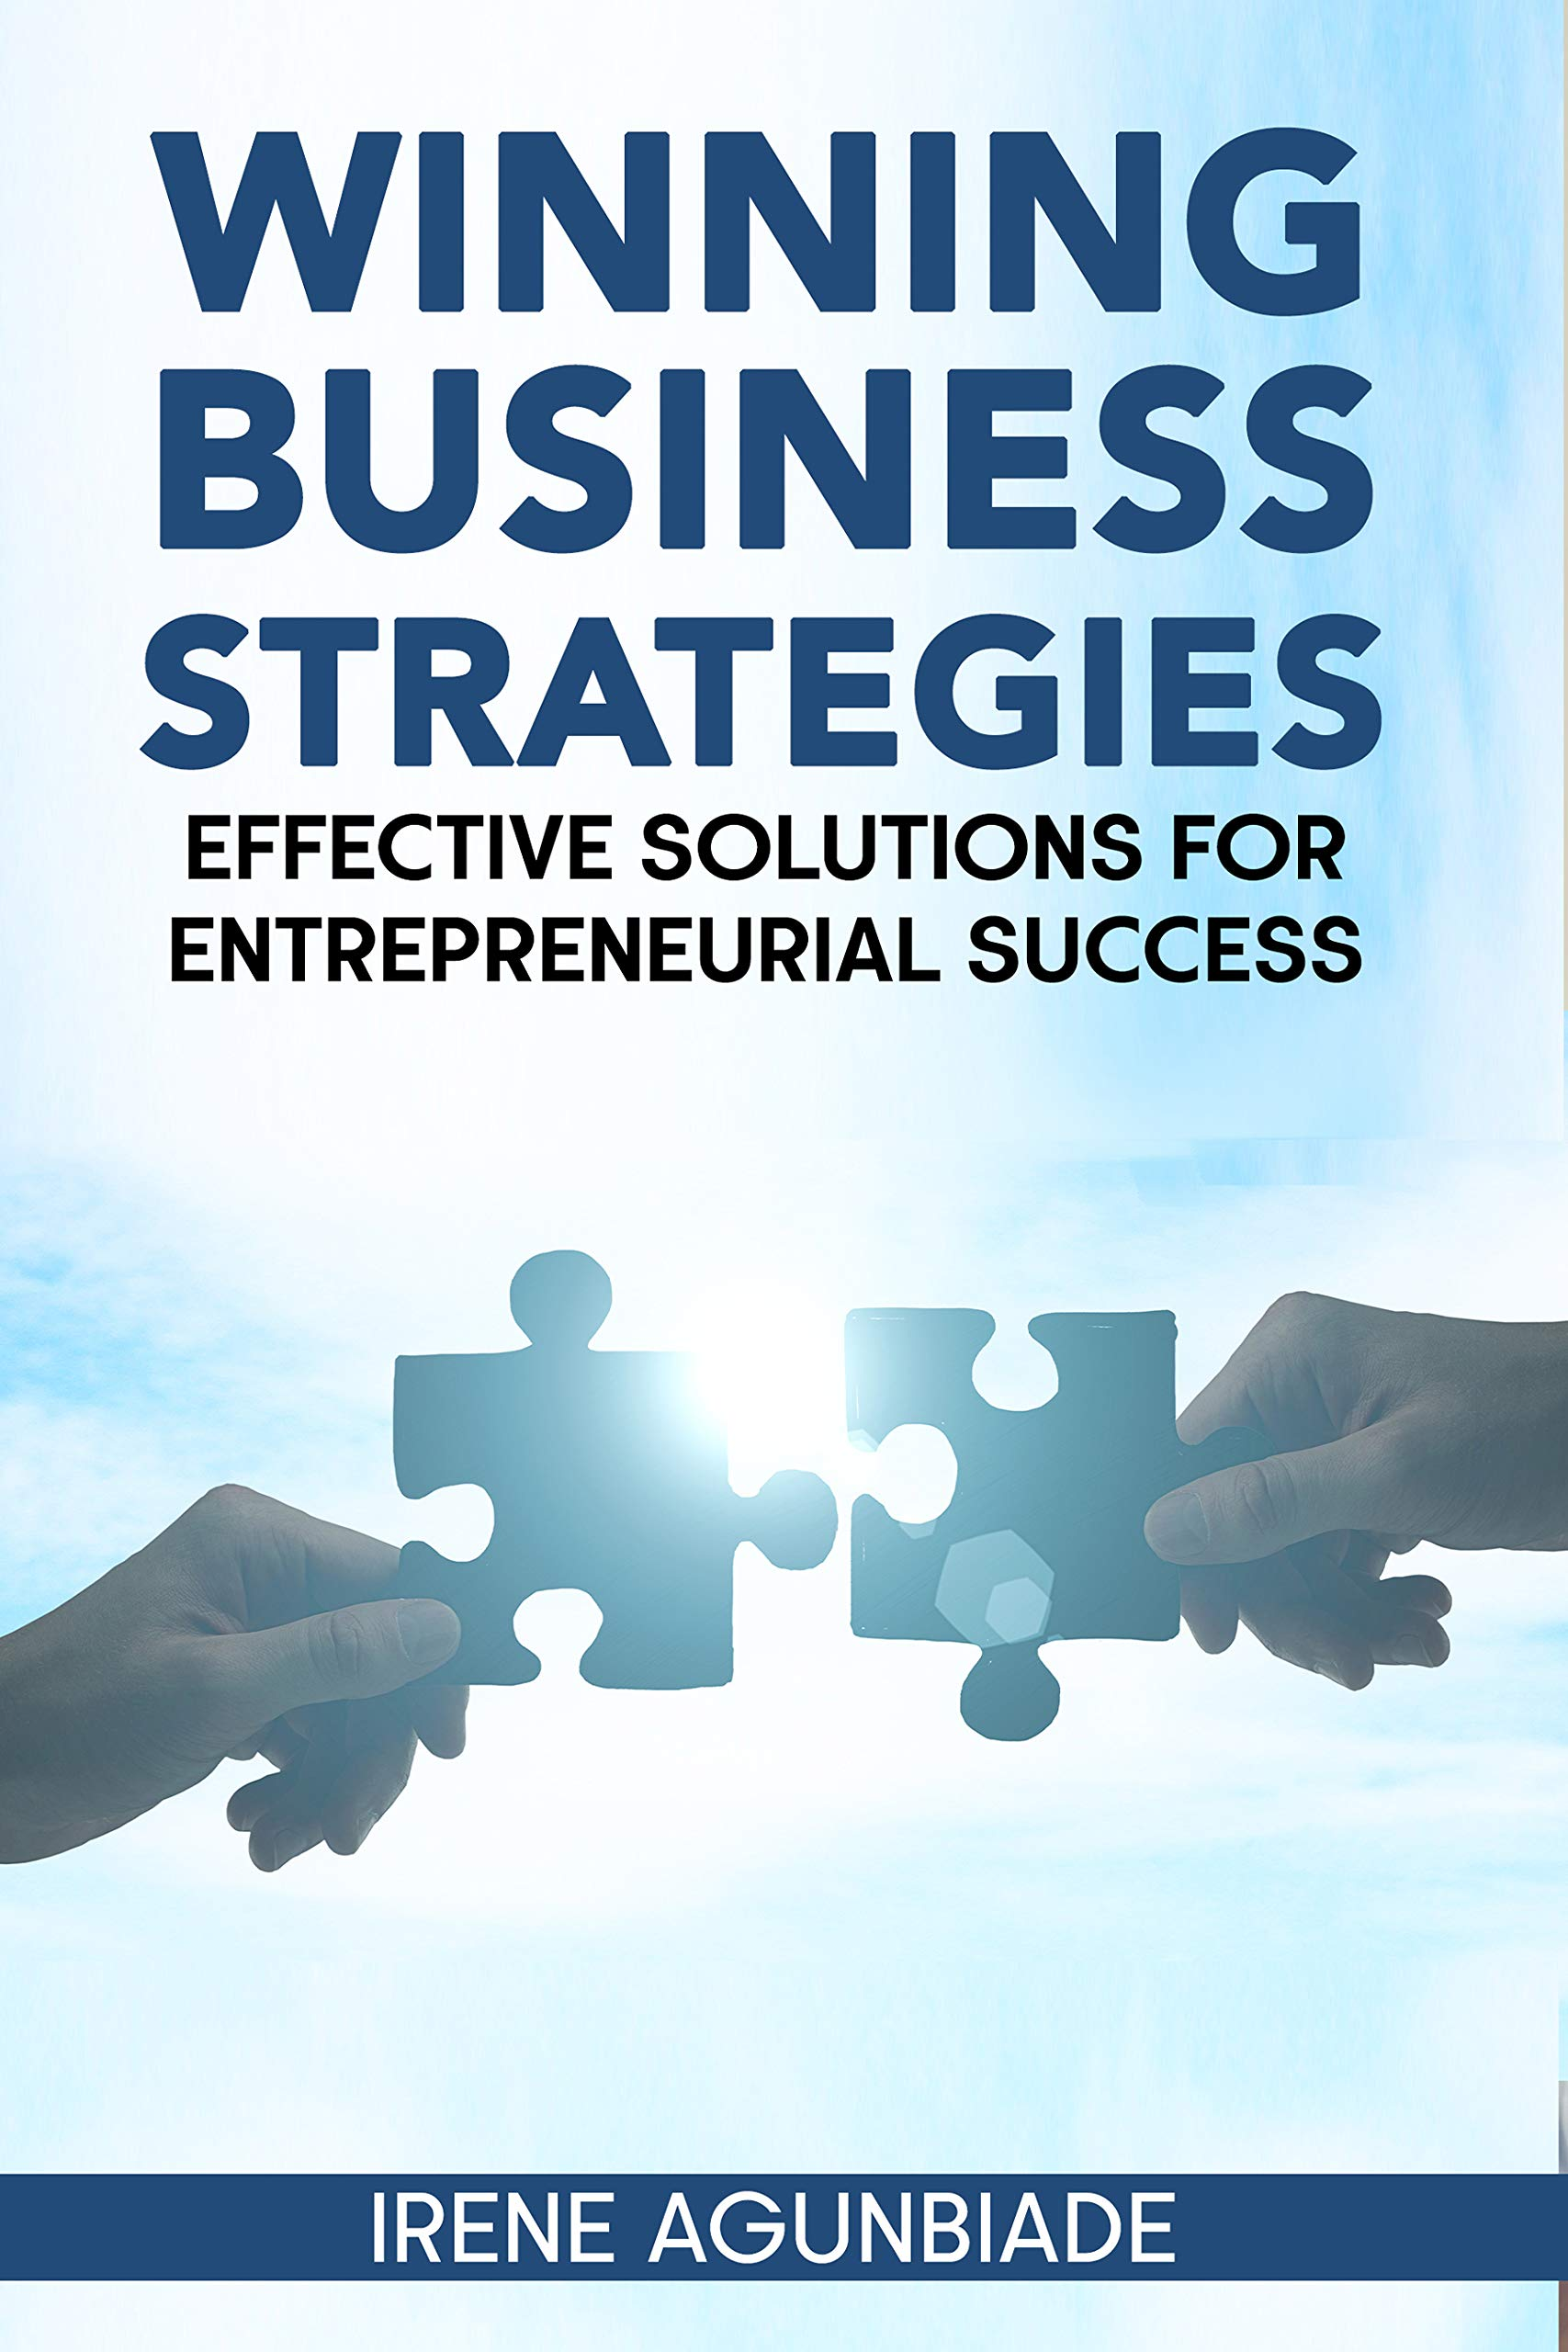 WINNING BUSINESS STRATEGIES: EFFECTIVE SOLUTIONS FOR ENTREPRENEURIAL SUCCESS